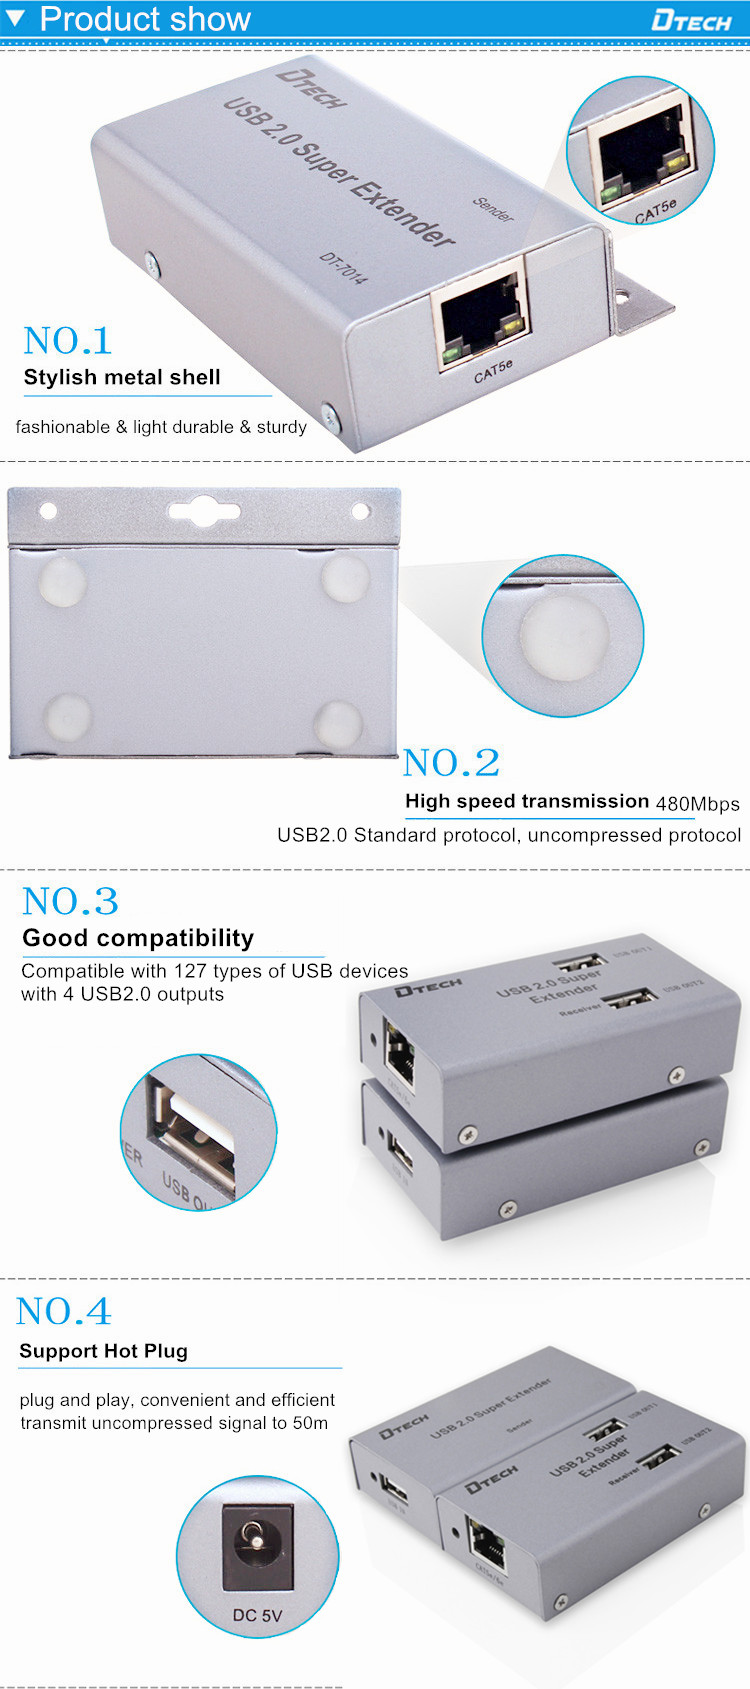 Dtech Hot selling 1080p 4 USB port USB2.0 Extender 50m